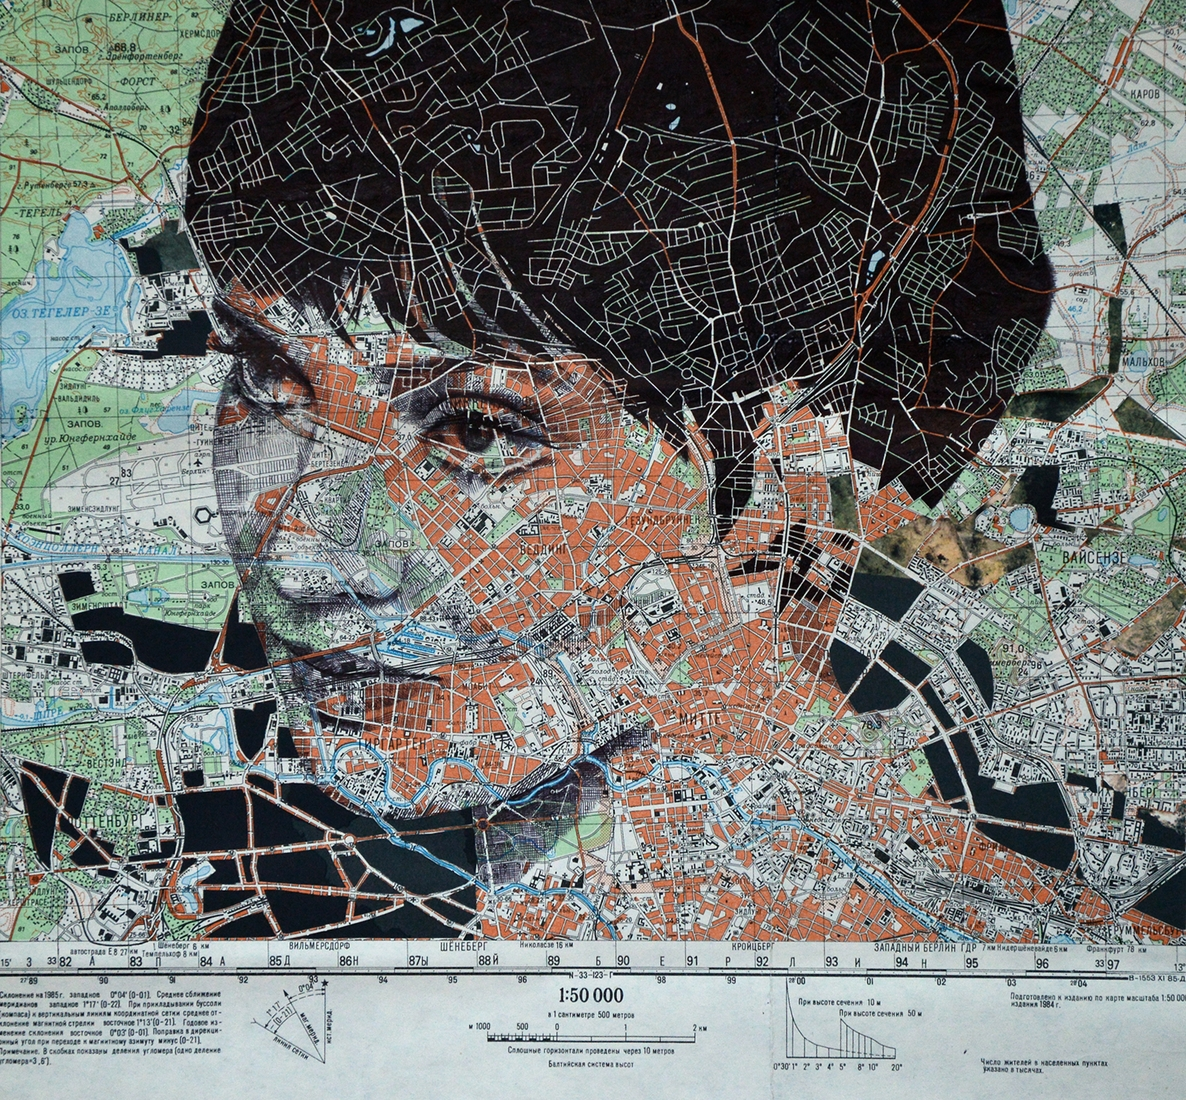 02-Anna-Karina-Edward-Fairburn-Maps-and-Cartography-linked-to-Portrait-Drawings-www-designstack-co